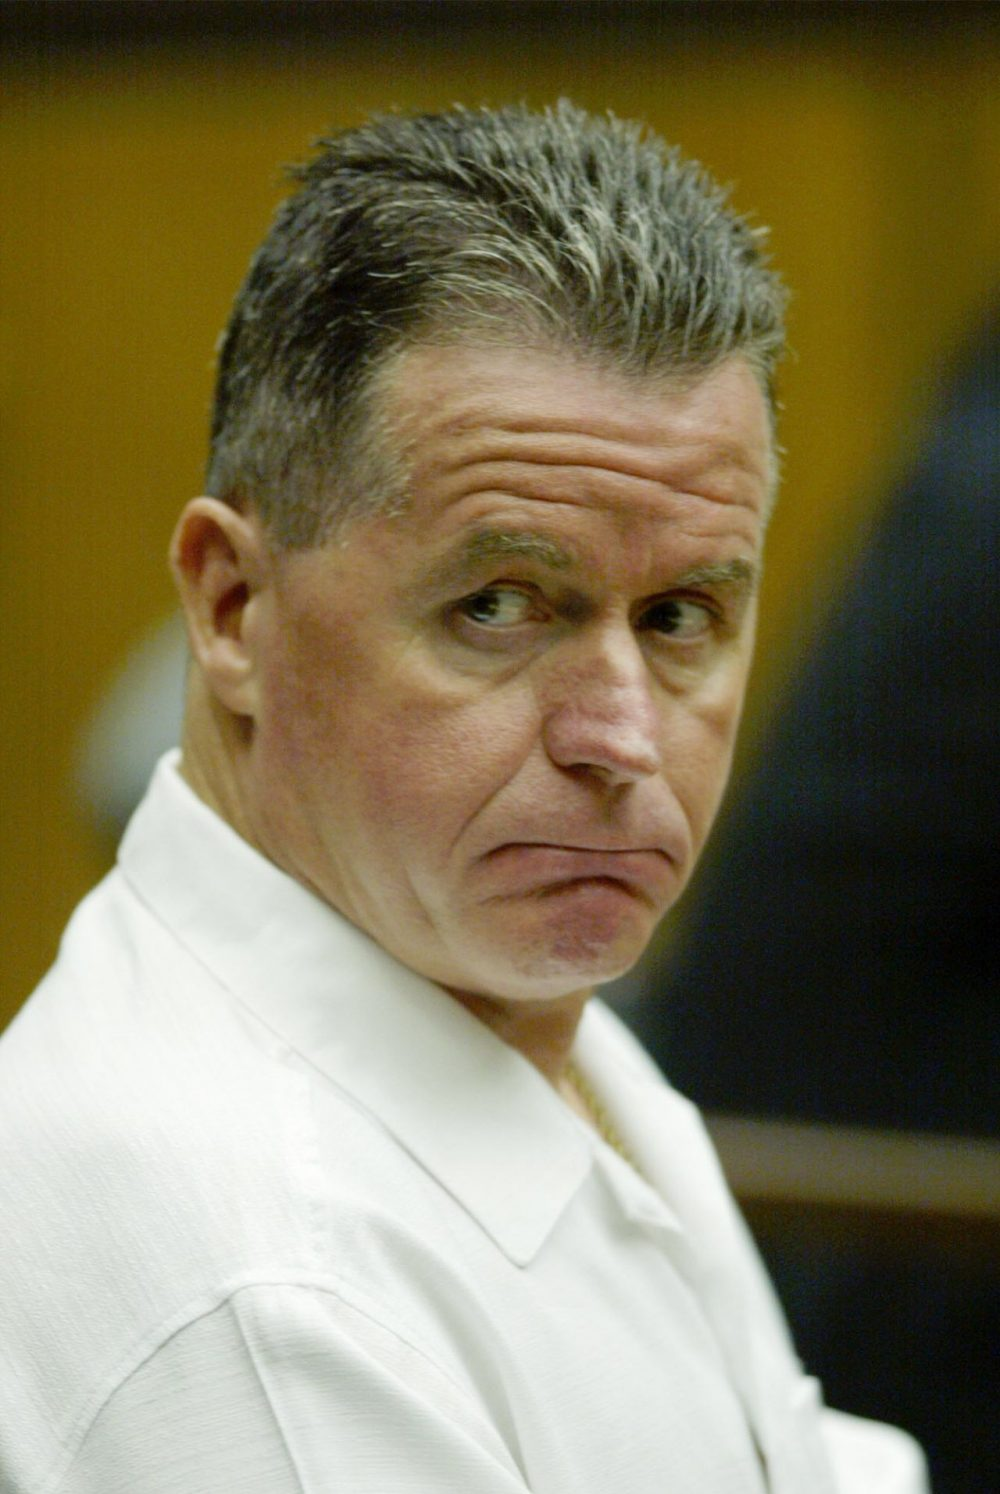 In this AP file photo, Fred Weichel, then 50, sits in court in 2003. He is serving a life sentence for a 1980 murder. (Julia Malakie/AP)